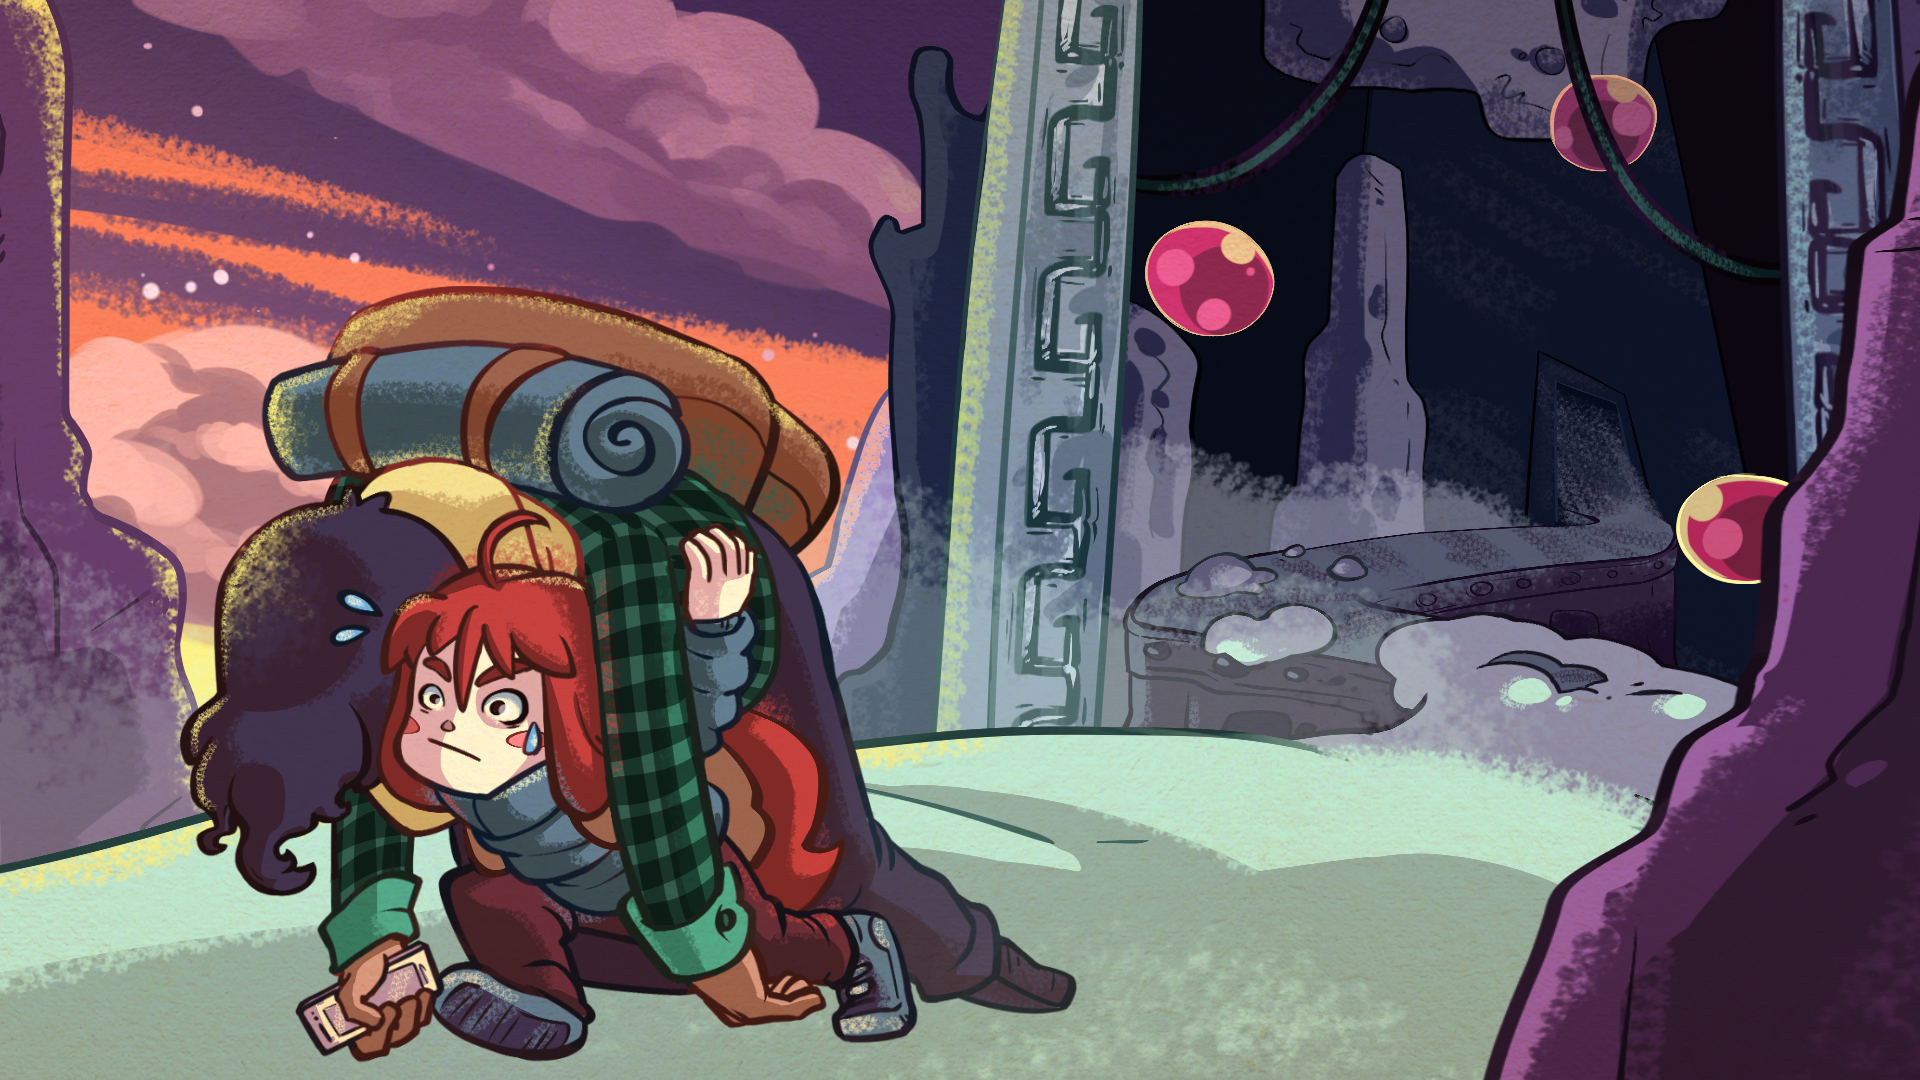 Celeste Game Wallpapers   Read games review play online games 1920x1080